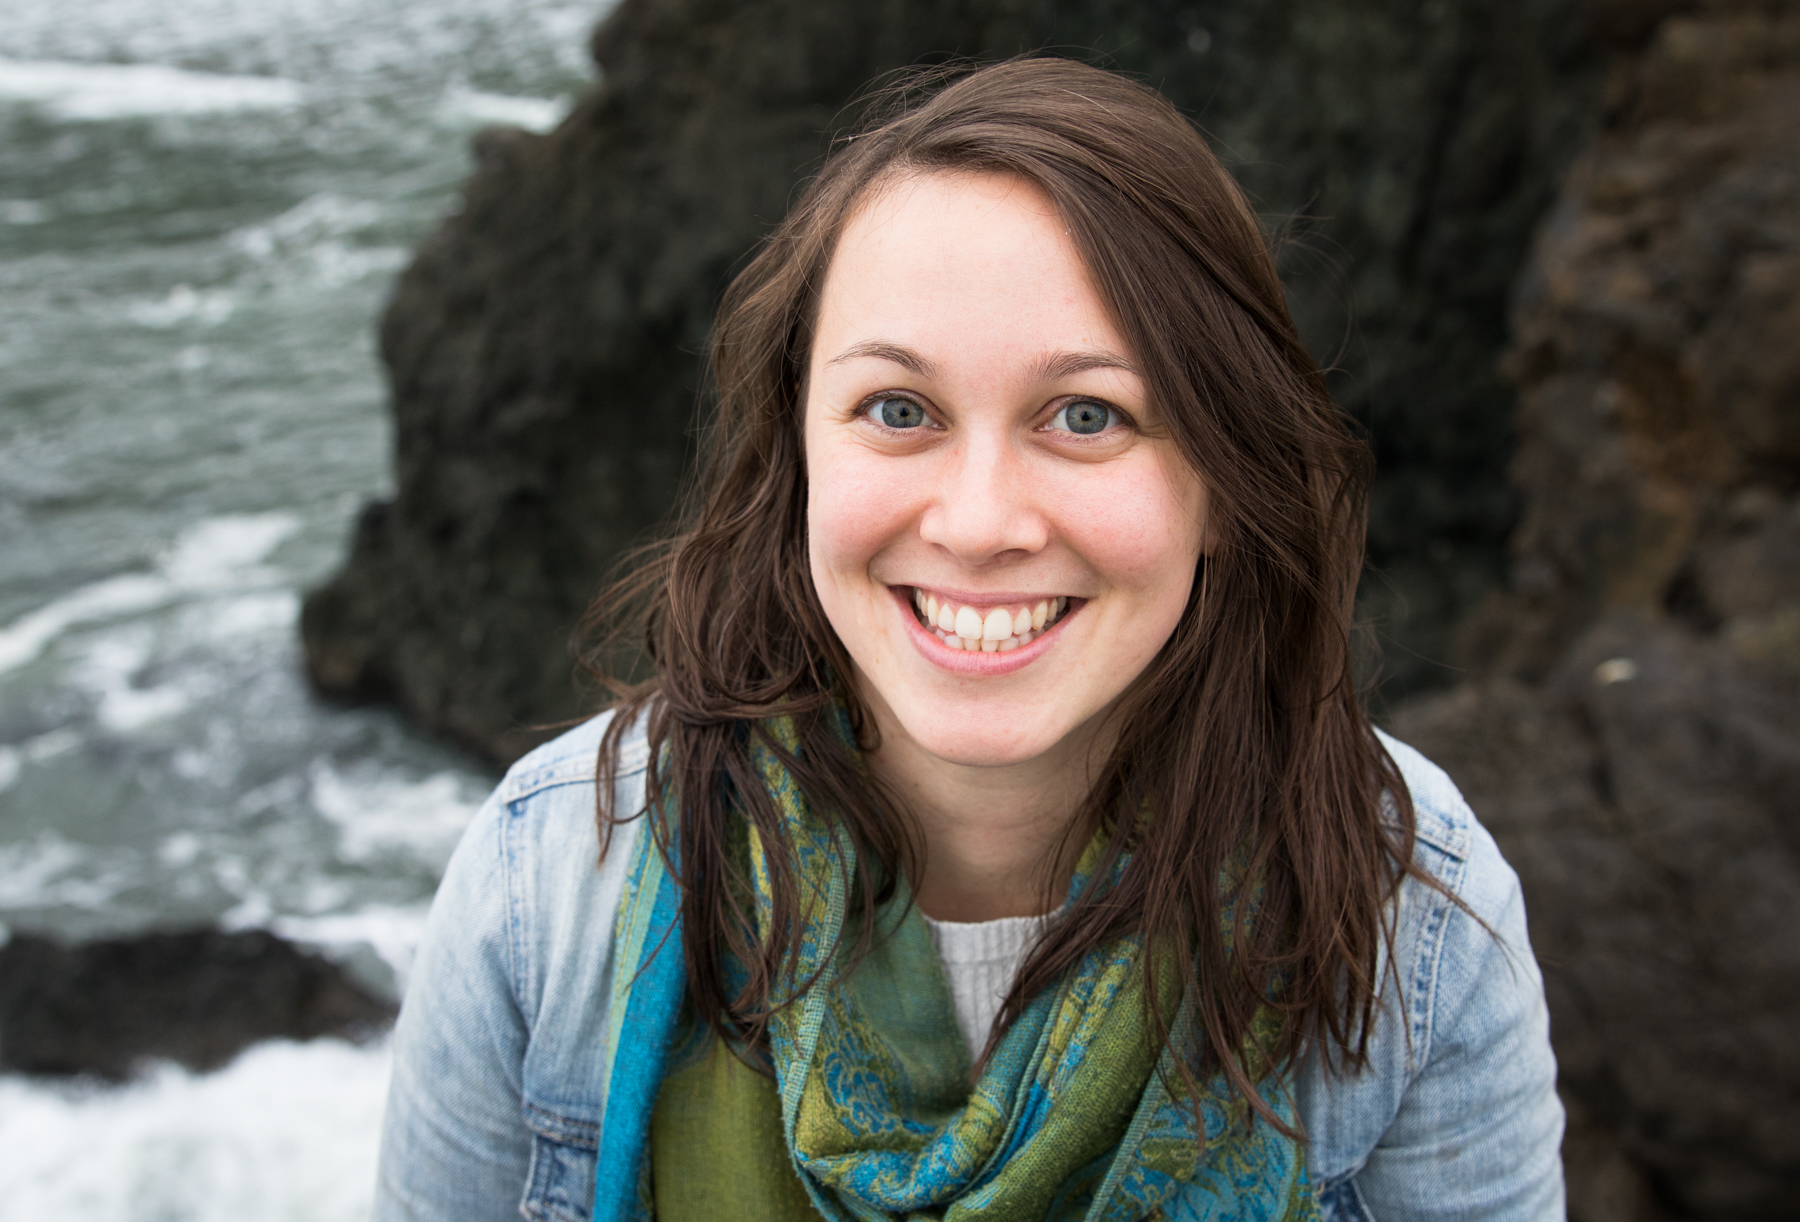 Megan is a graduate of Rhode Island School of Design, where she earned her BFA in Apparel in 2015. She is also a Registered Hatha Yoga Teacher, earning her 200-hr diploma through the Yoga Therapy and Training Centre in Dublin, Ireland in 2014.